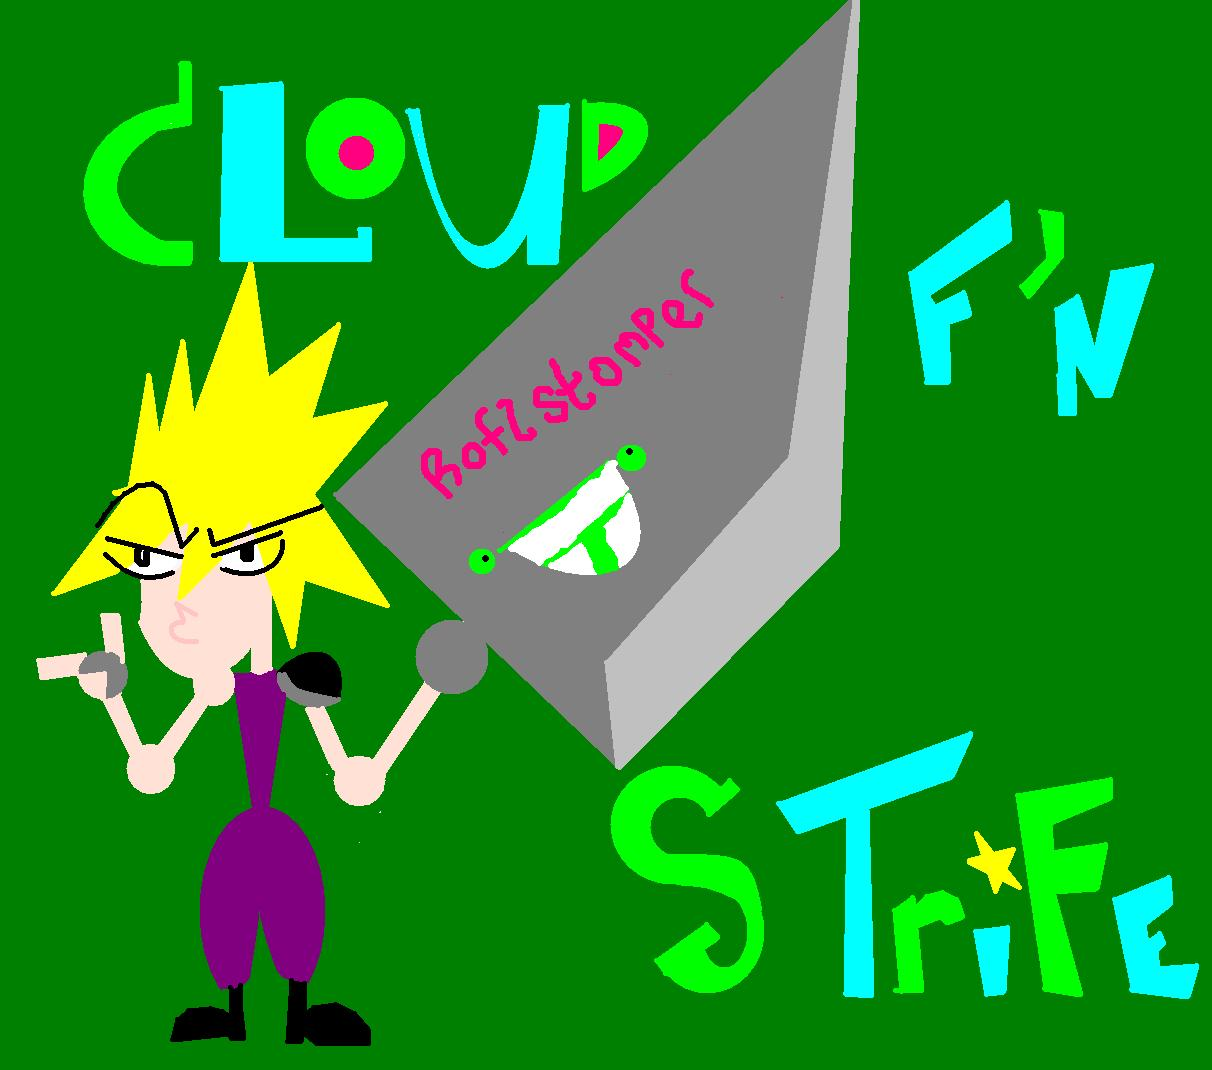 Cloud Effin Strife.